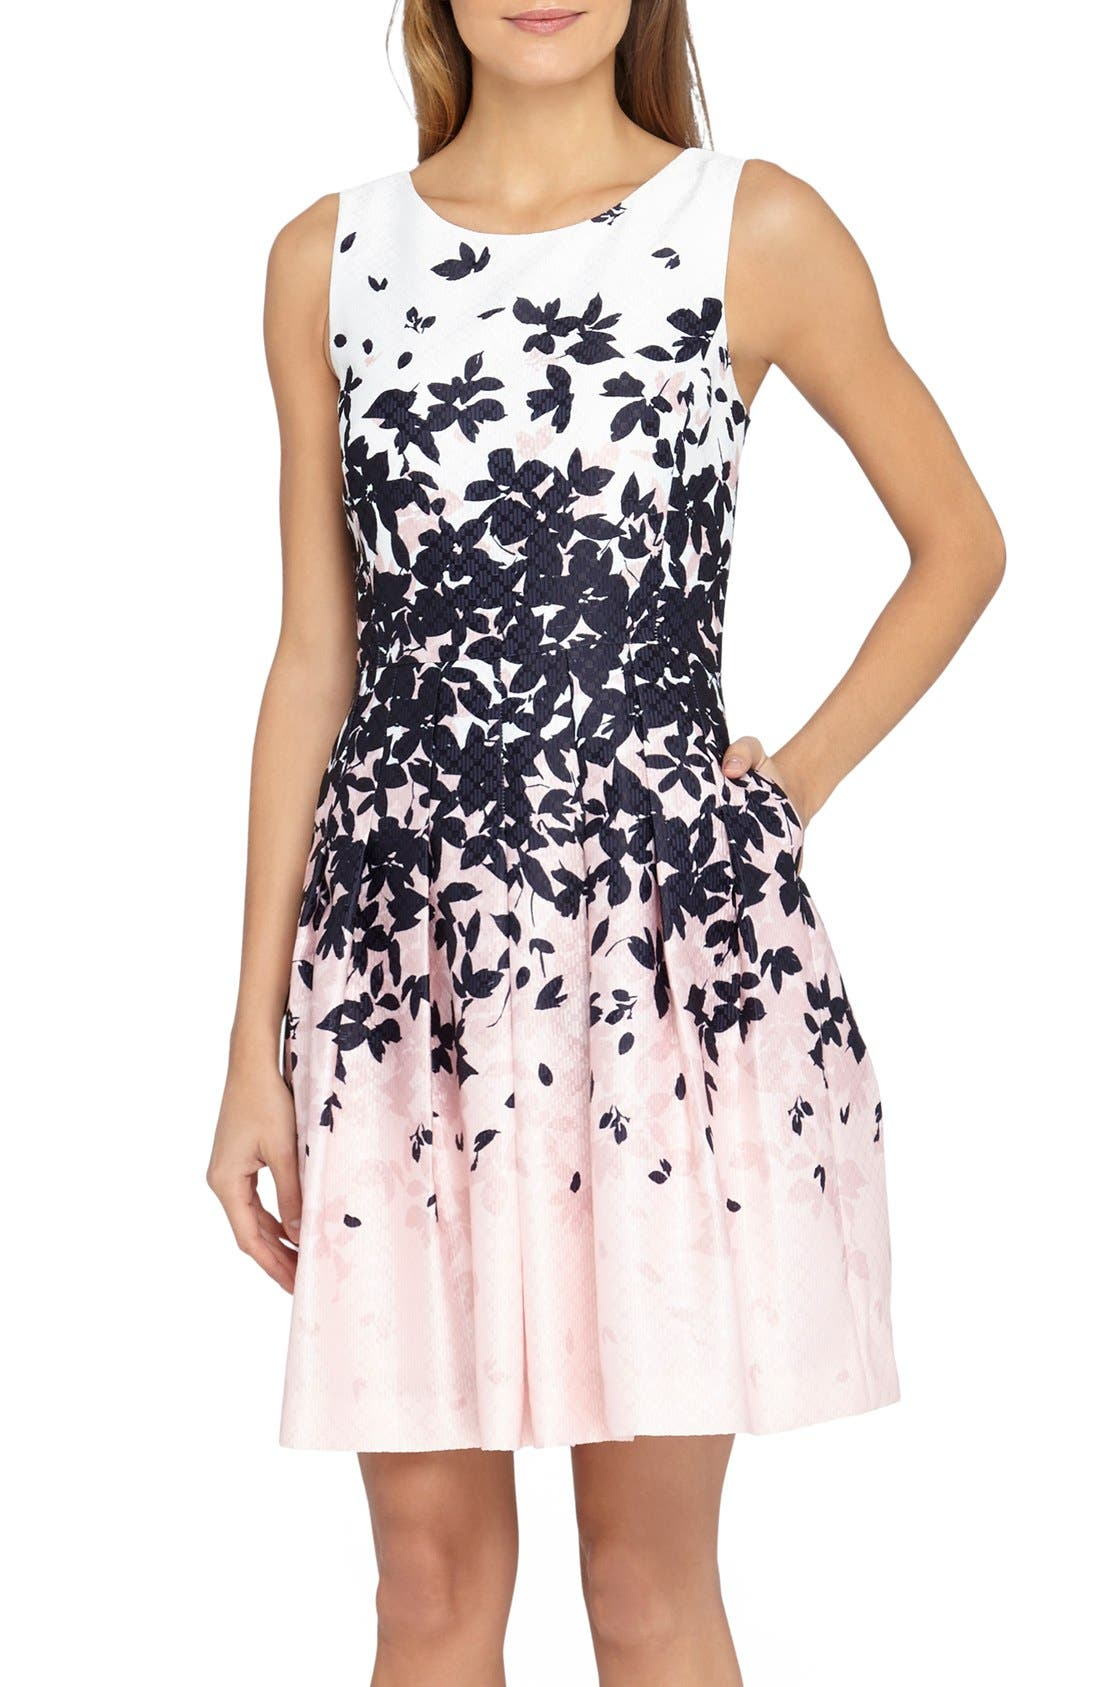 Main Image - Tahari Floral Jacquard Fit & Flare Dress (Regular & Petite)